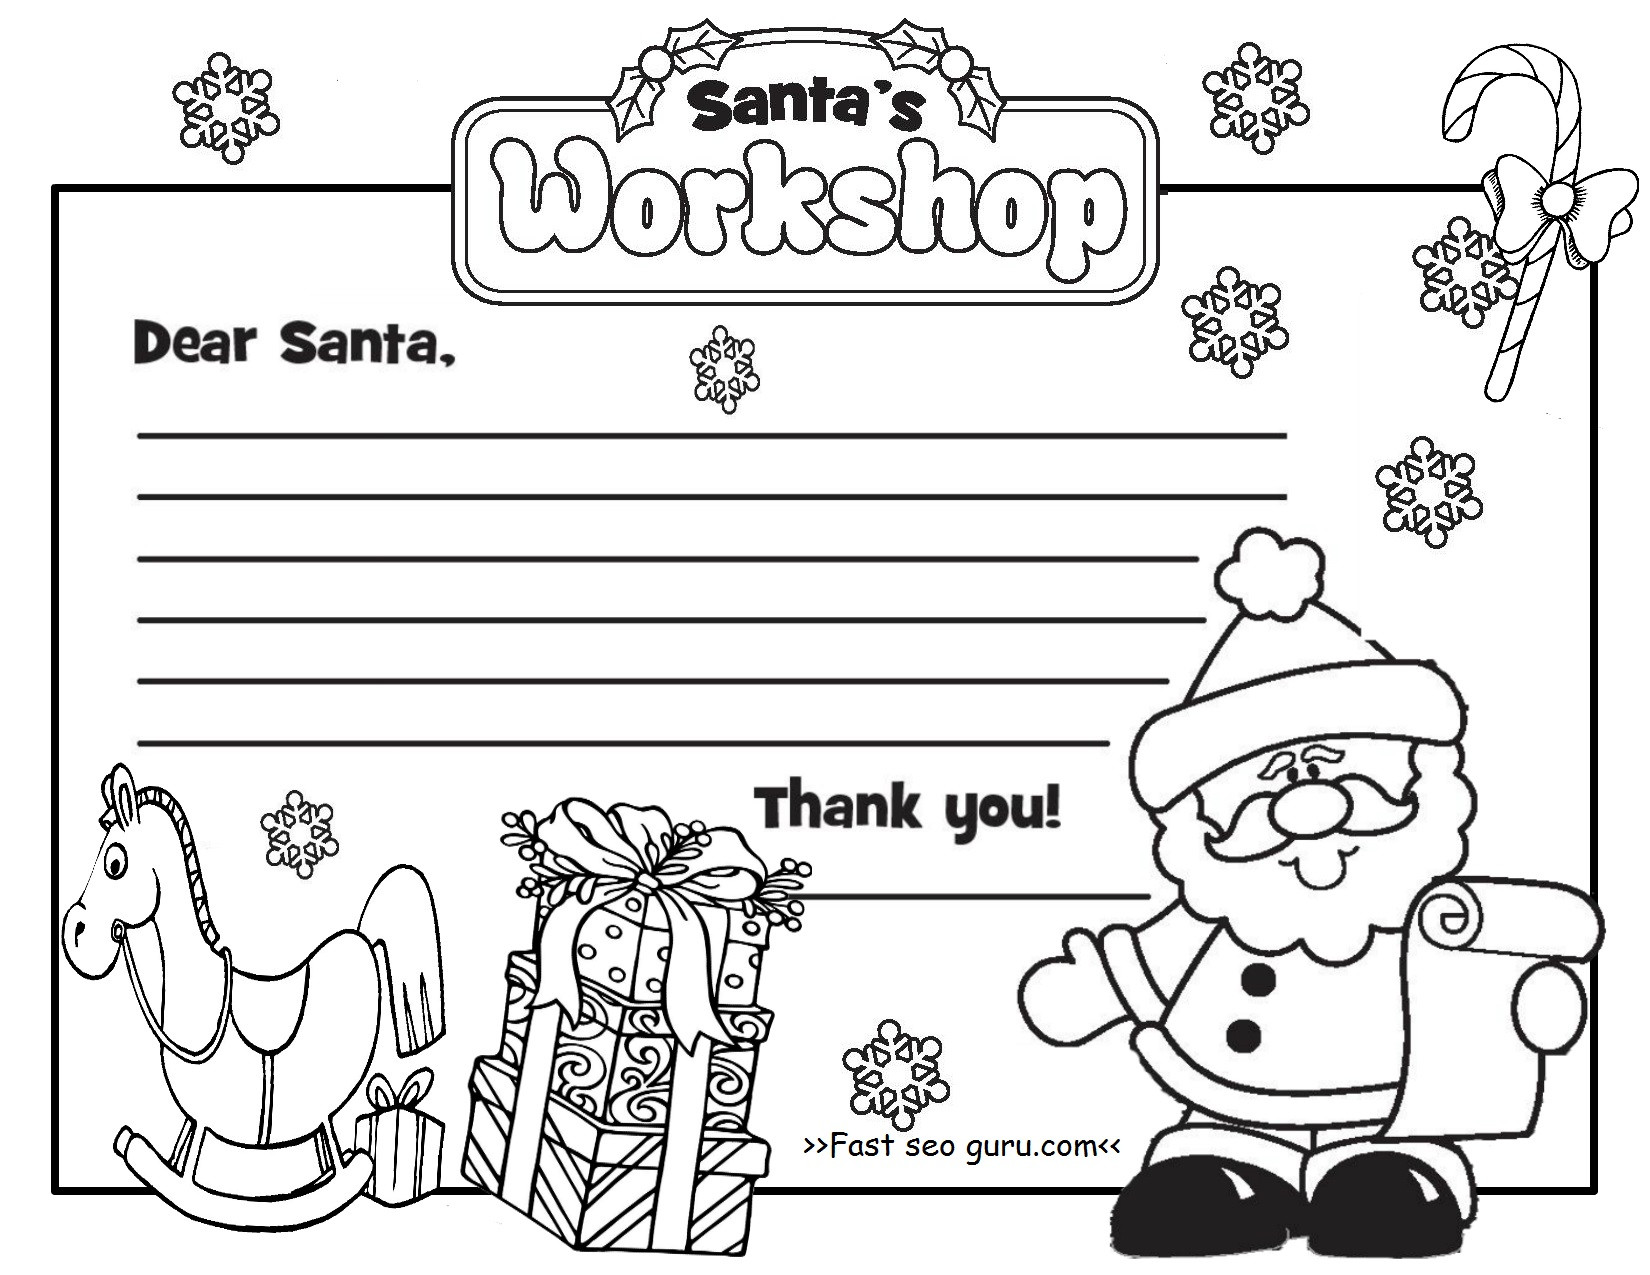 Dear Santa Letter Coloring Page With To Free Pages Fine Fiscalreform